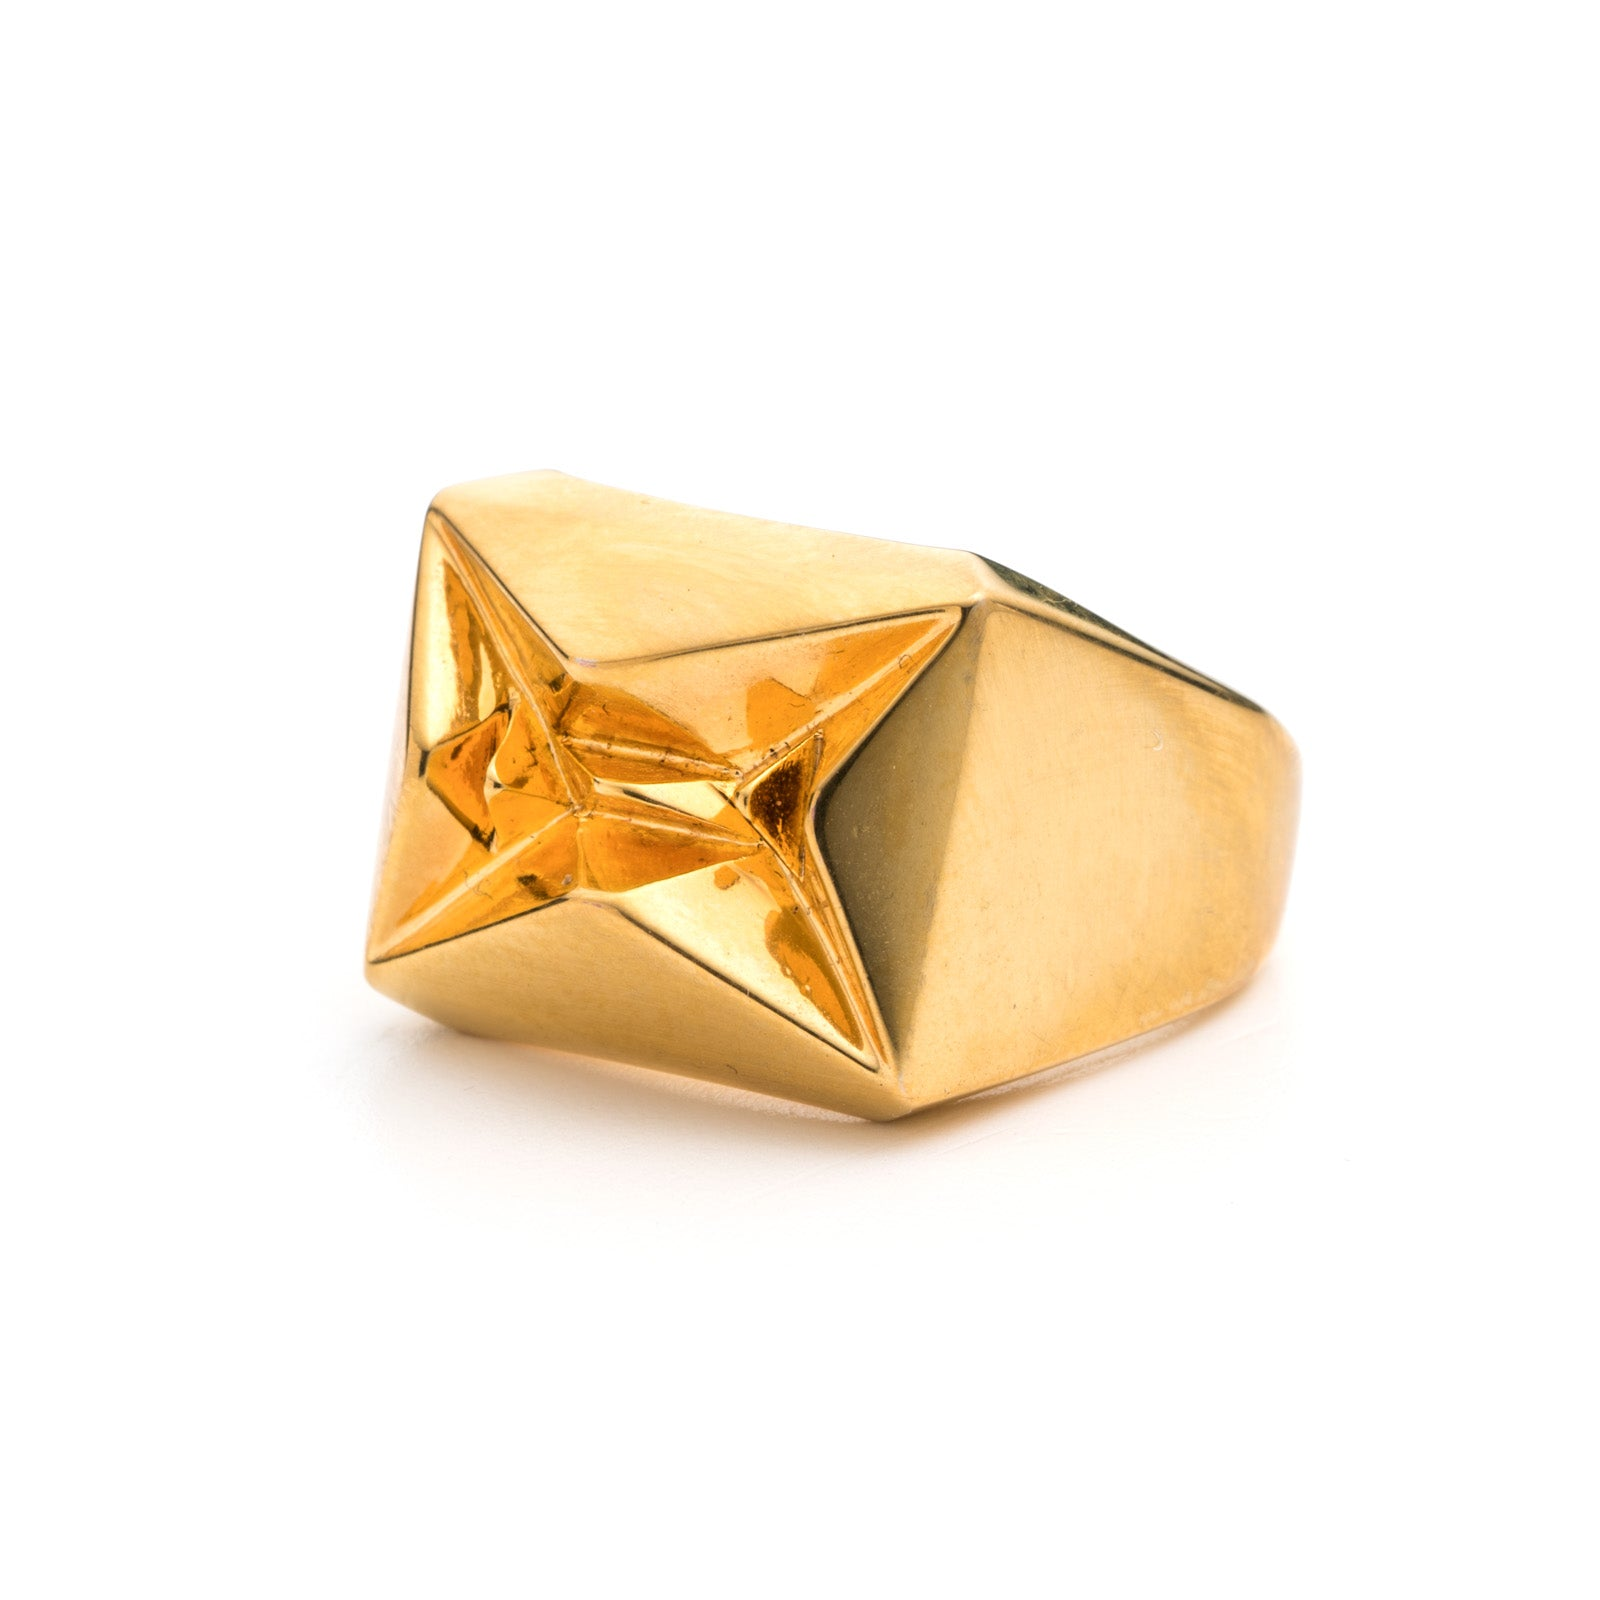 PRIZM SIGNET RING - 18K GOLD PLATED BRASS